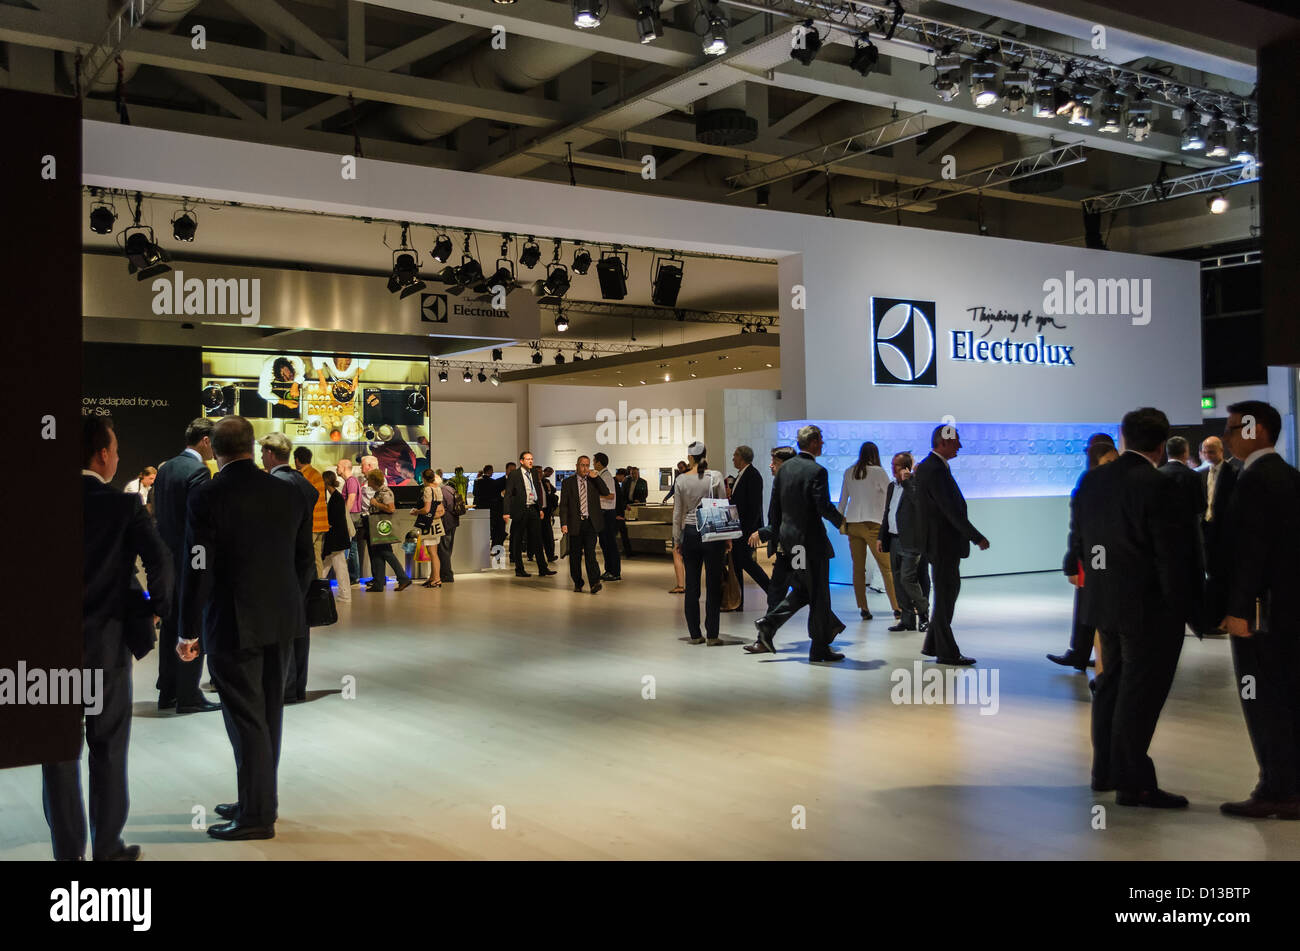 D Printing Exhibition Berlin : Electrolux stock photos images alamy